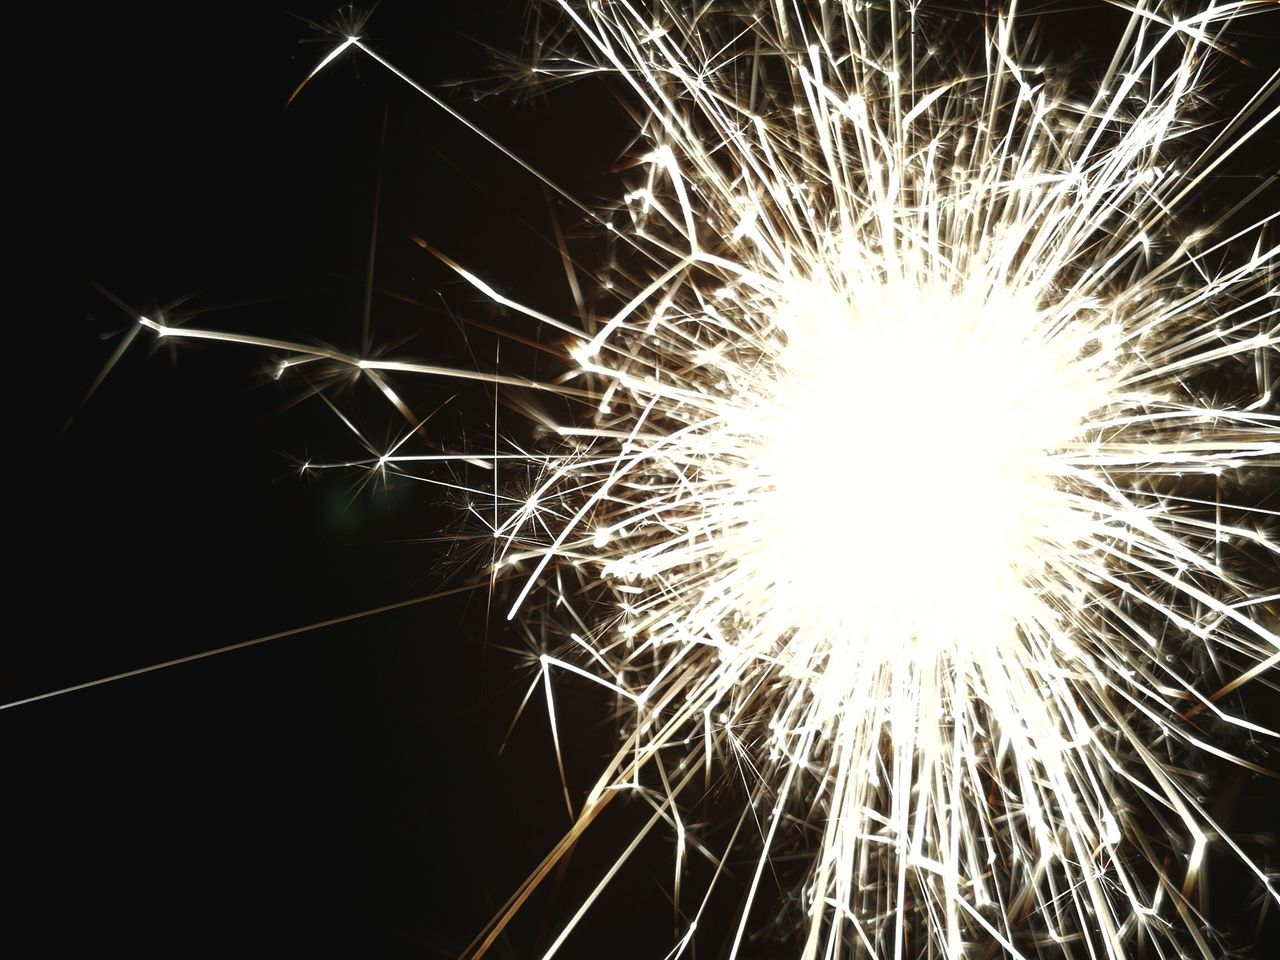 sparks, firework display, firework - man made object, night, long exposure, celebration, exploding, glowing, illuminated, arts culture and entertainment, burning, sparkler, no people, low angle view, blurred motion, motion, firework, indoors, close-up